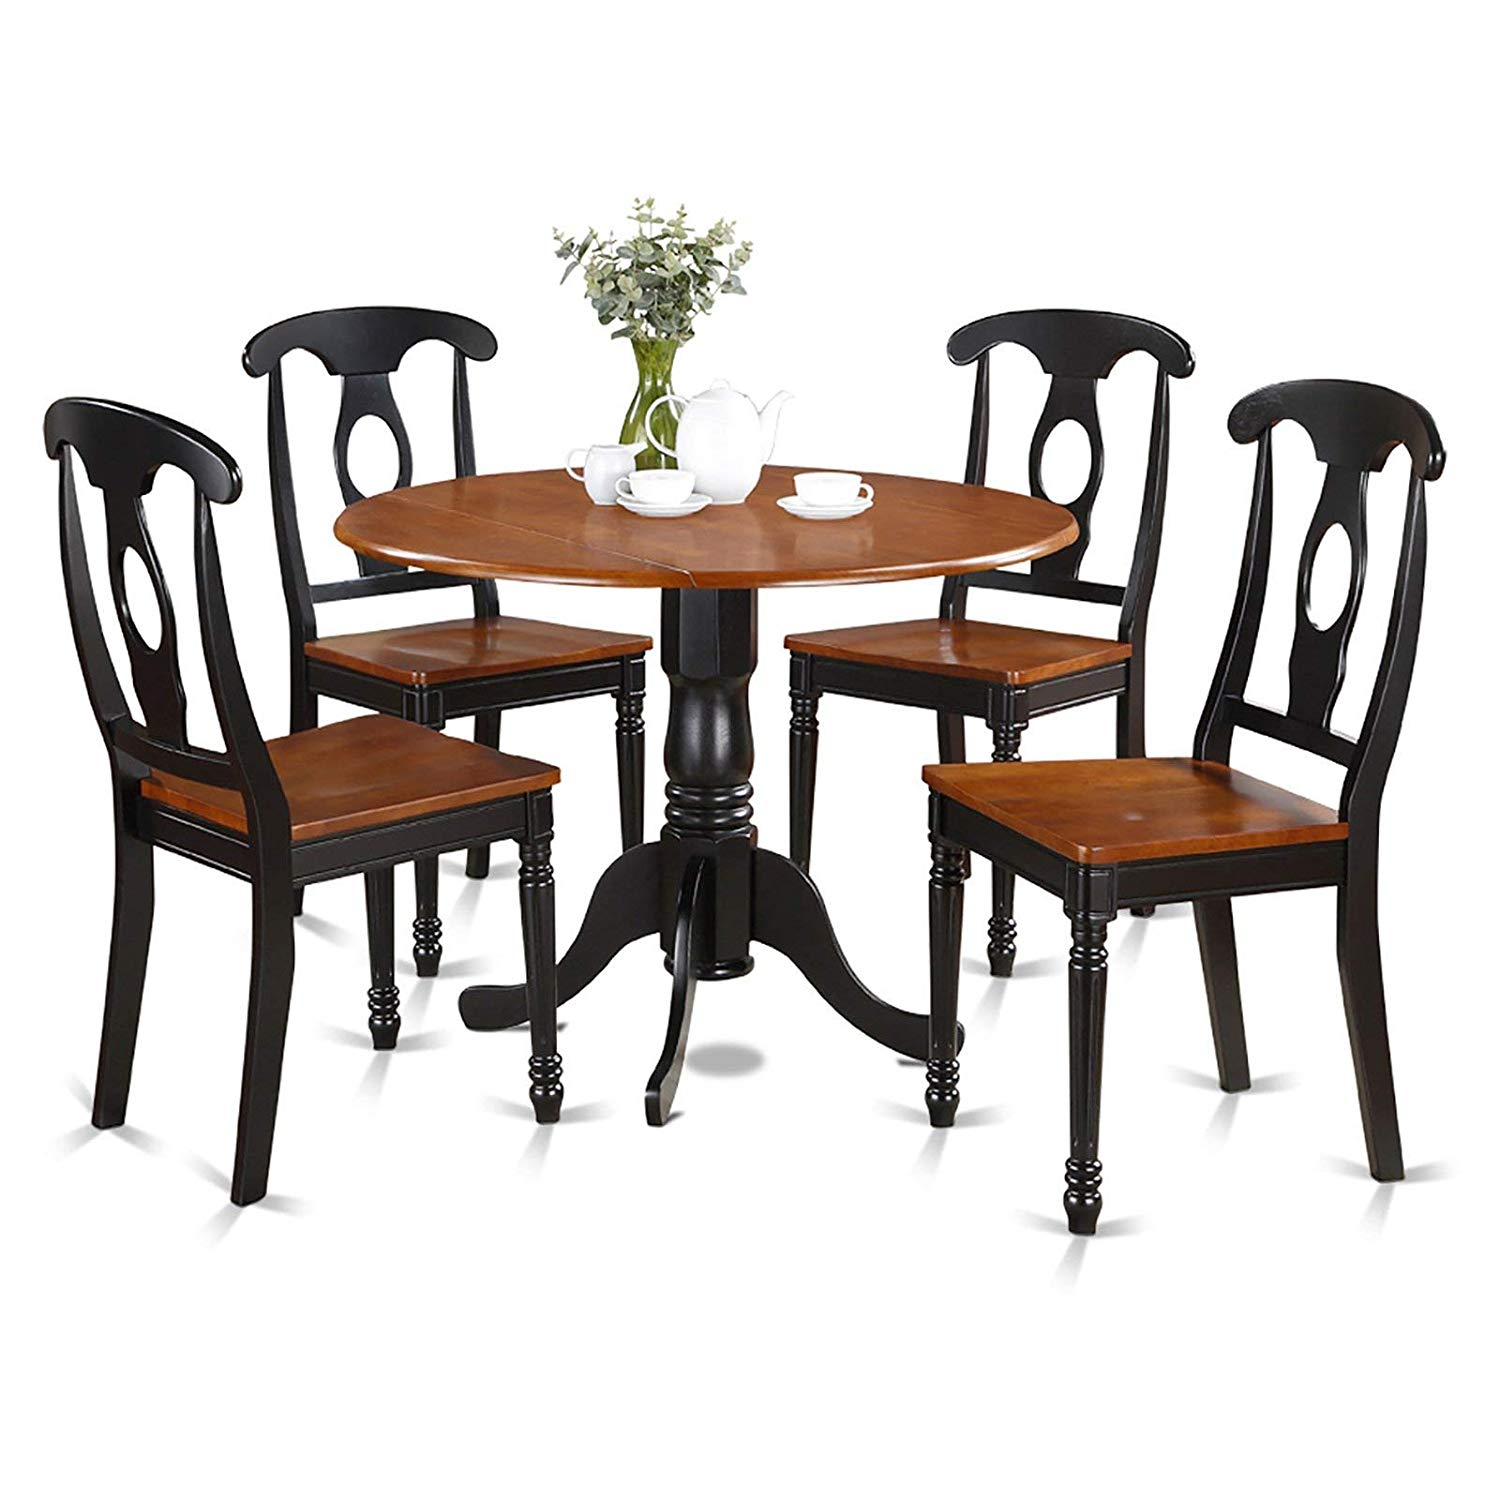 "5 Piece Dining Table Set with Wooden Seat Chairs, Solid Asian Hardwood, 2 9"" Drop Leaves, Contoured Wood Seat, Keyhole Chair Backs, Turned Pedestal Table Base, Black / Cherry Finish + Expert Guide"